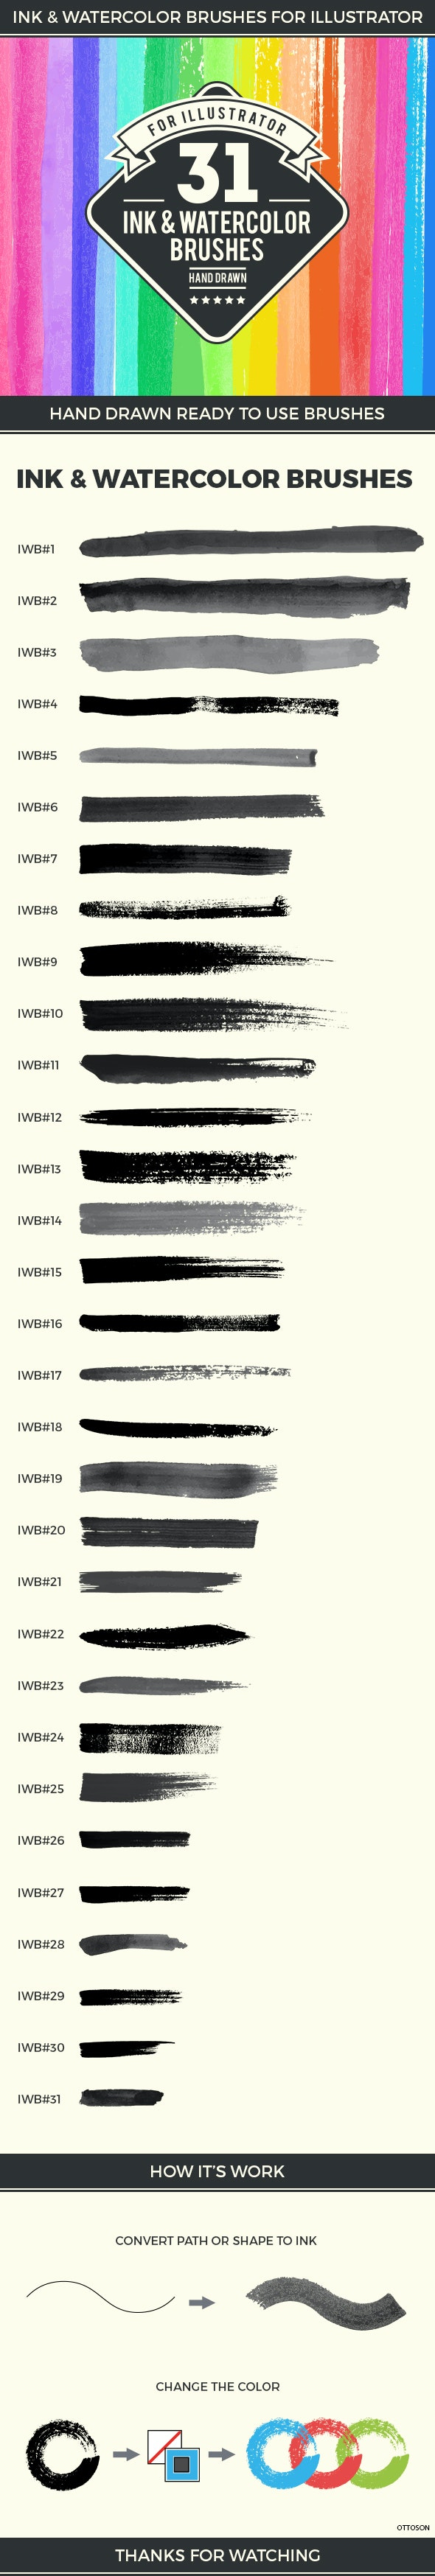 31 Ink and Watercolor Brushes - Brushes Illustrator